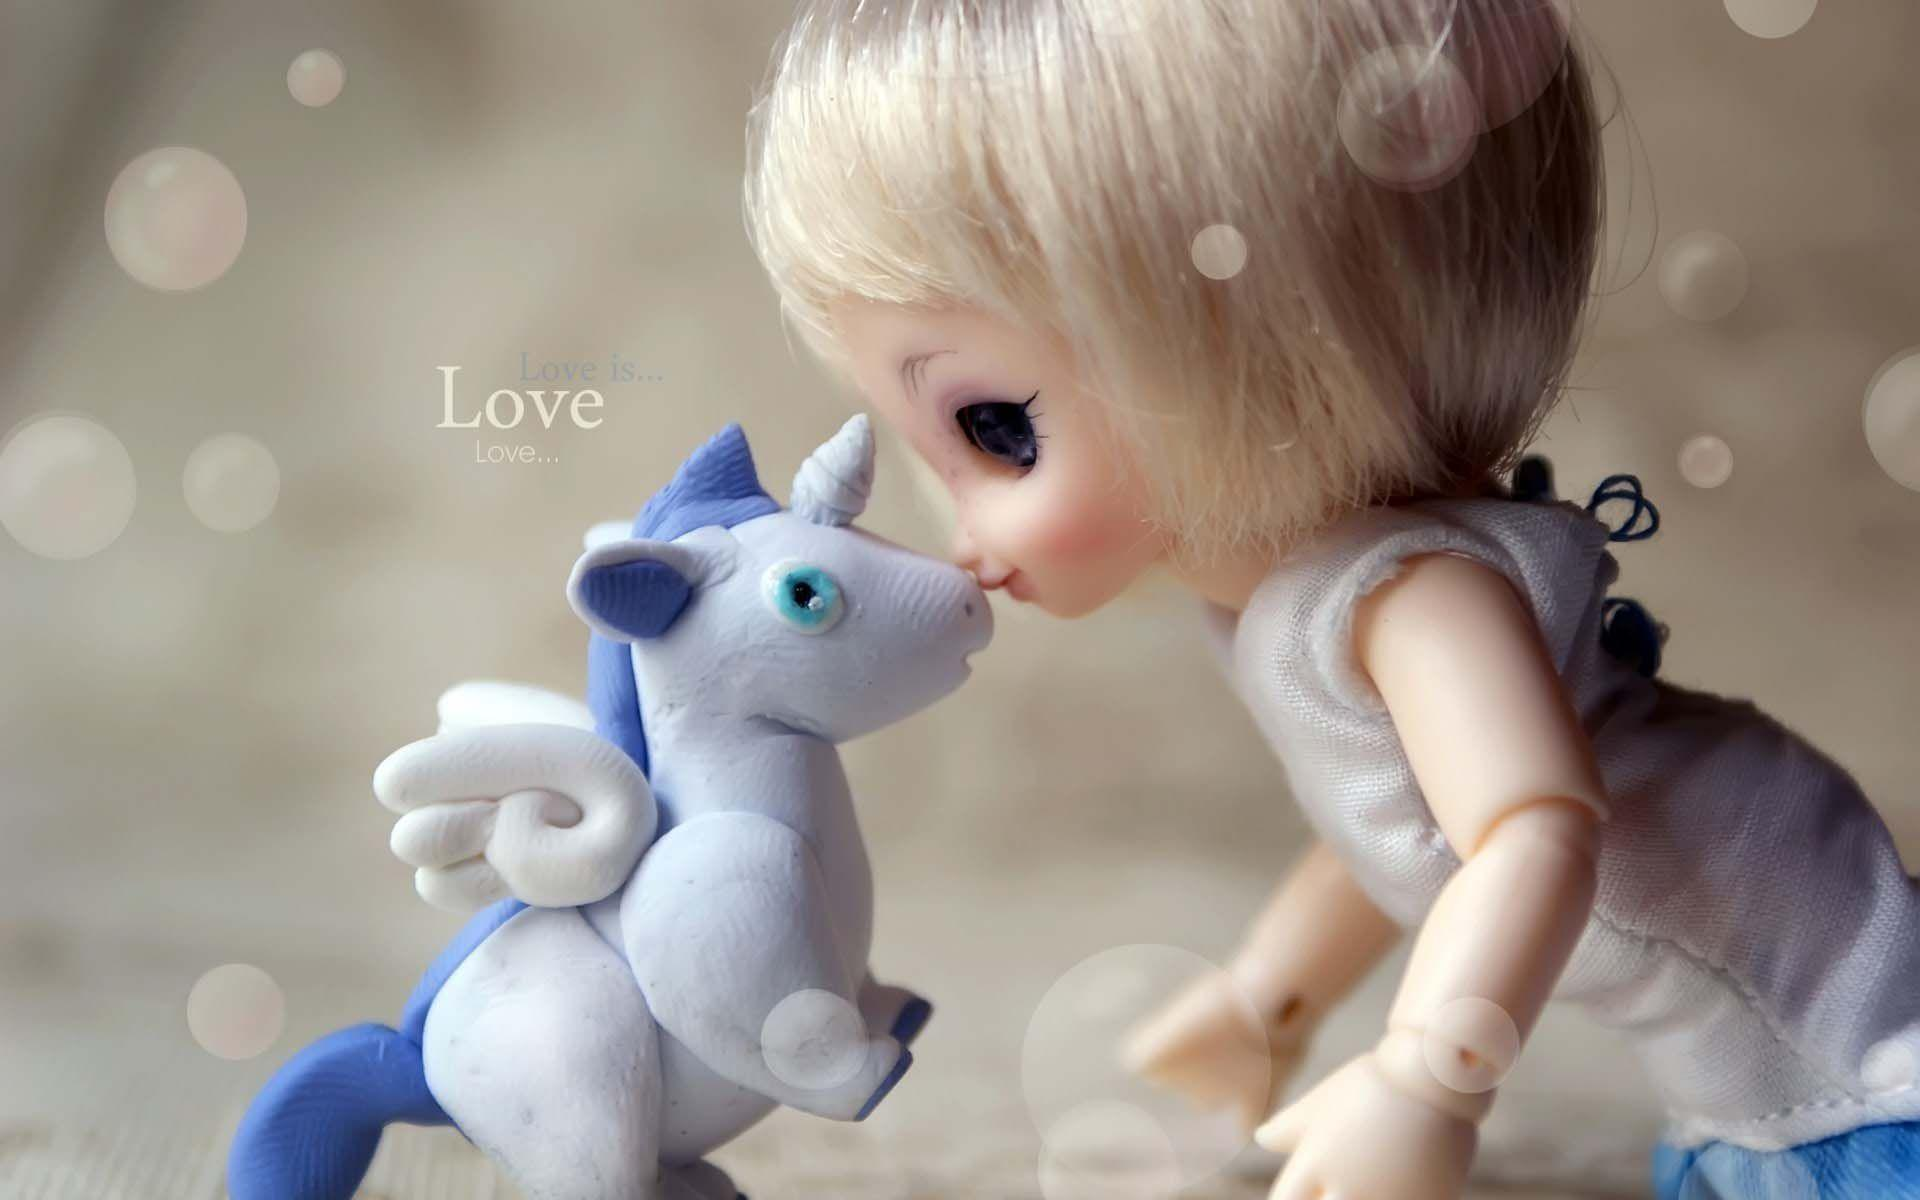 Love Doll Pic Wallpapers Wallpaper Cave